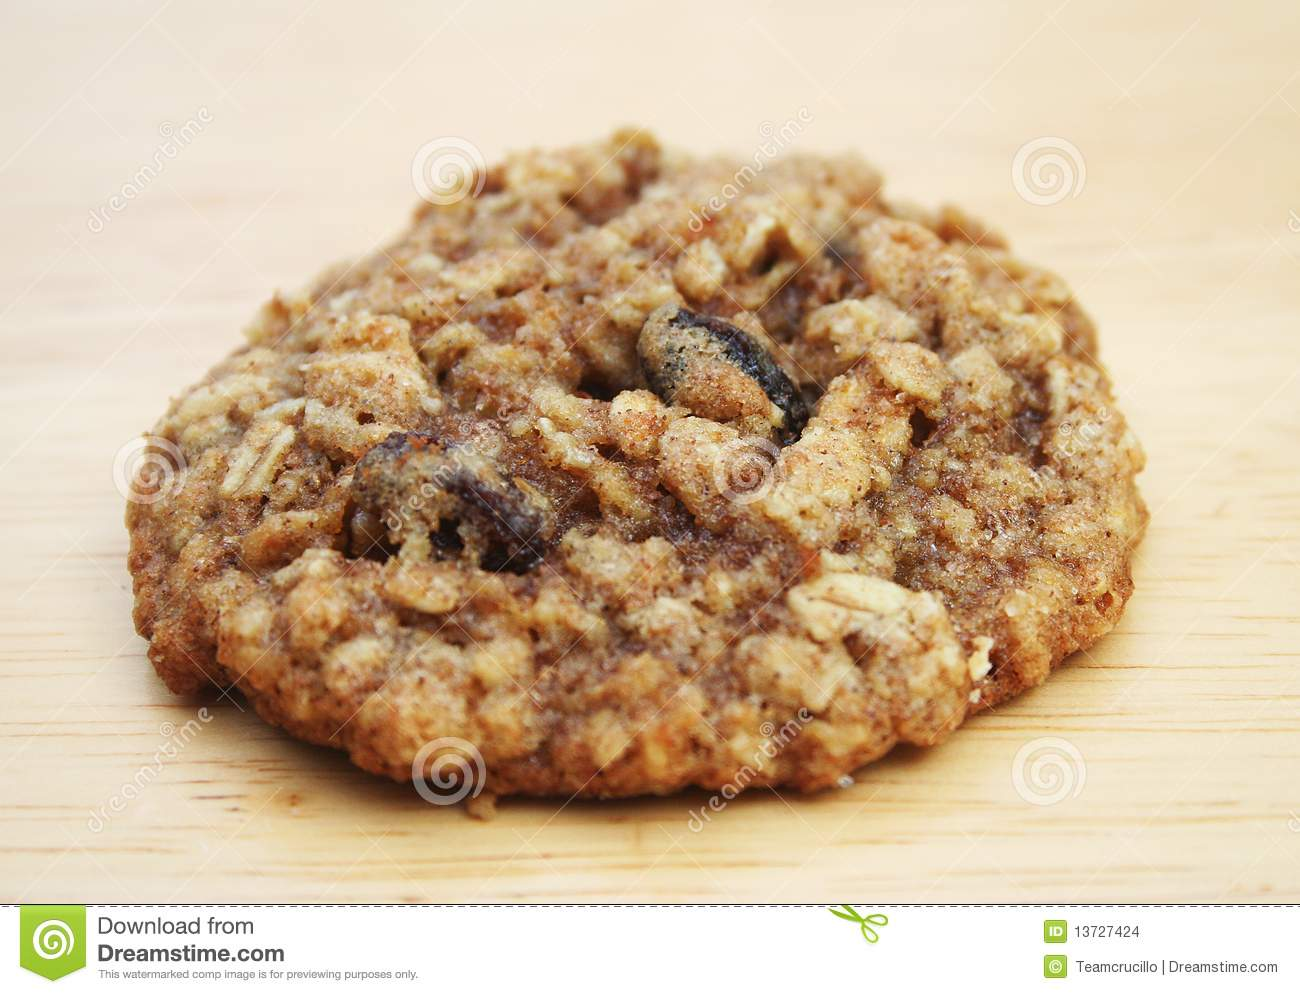 raisin single women A single-serving box of raisins is a practical, satisfying, nutritious snack the dehydration process depletes grapes of some nutrients, leaving them low in vitamin content, but they contain.